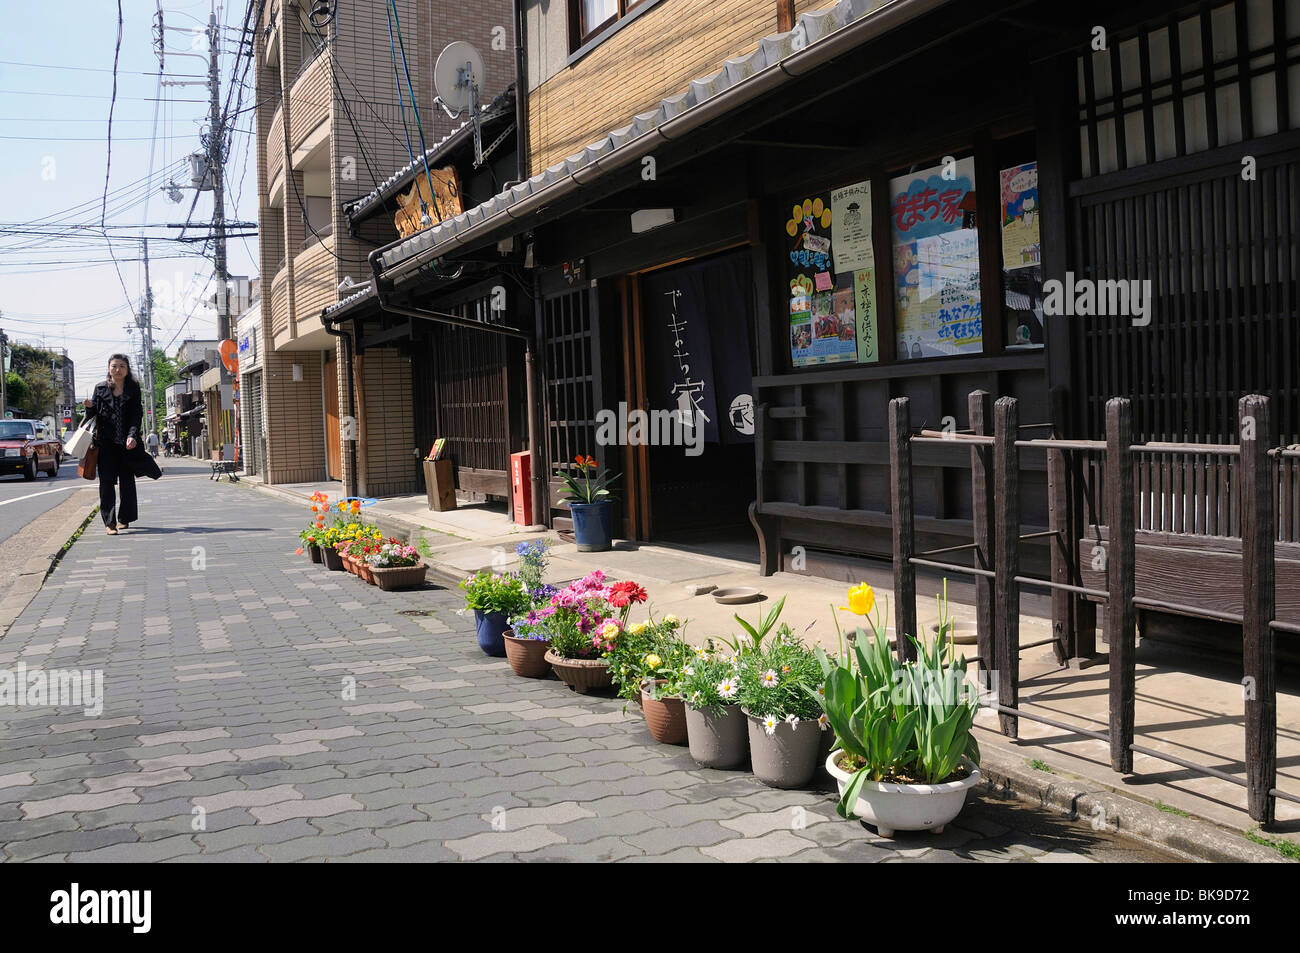 Typical 'front yard' in front of a traditional restaurant, Kyoto, Japan, Asia - Stock Image